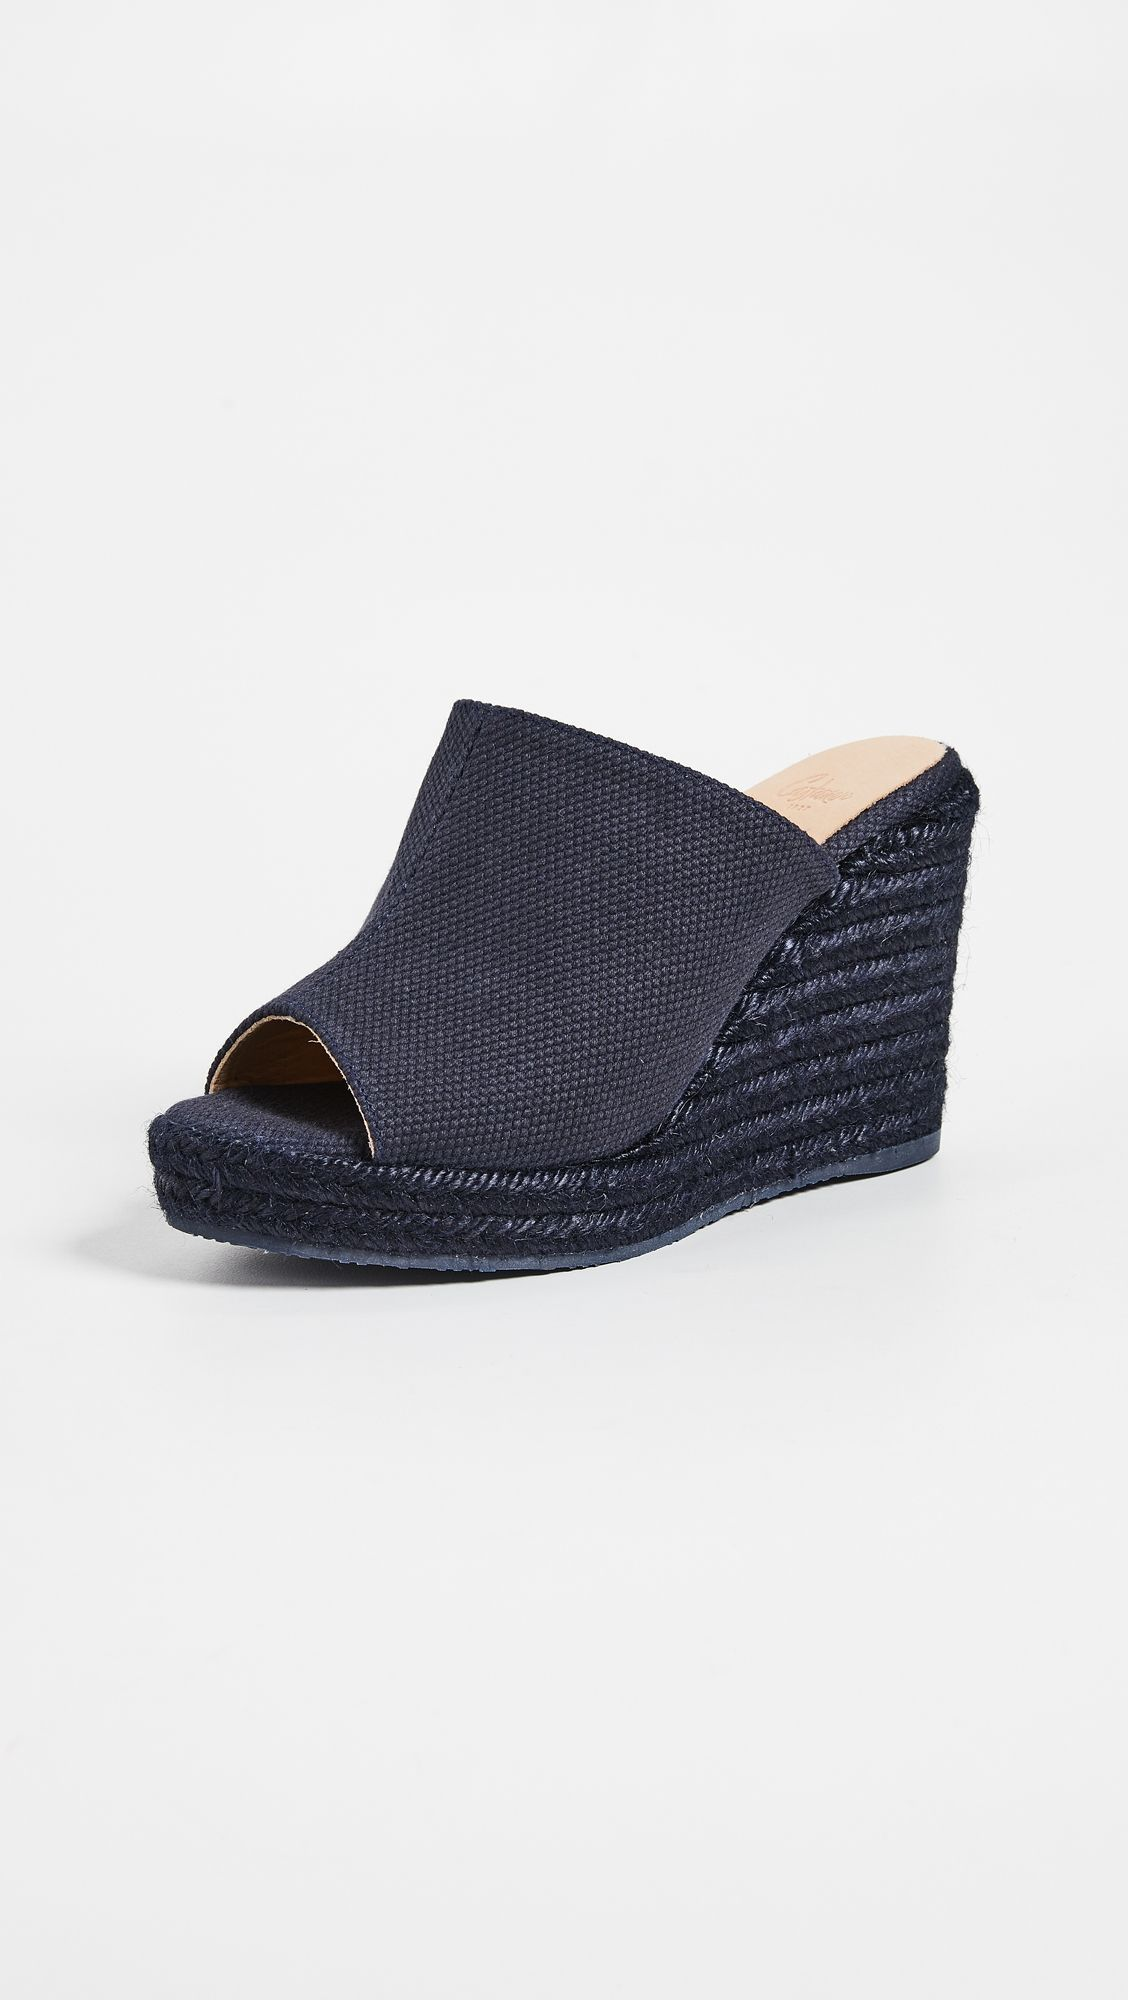 Castaner Bubu Wedge Mules Products Pinterest Wedge Mules